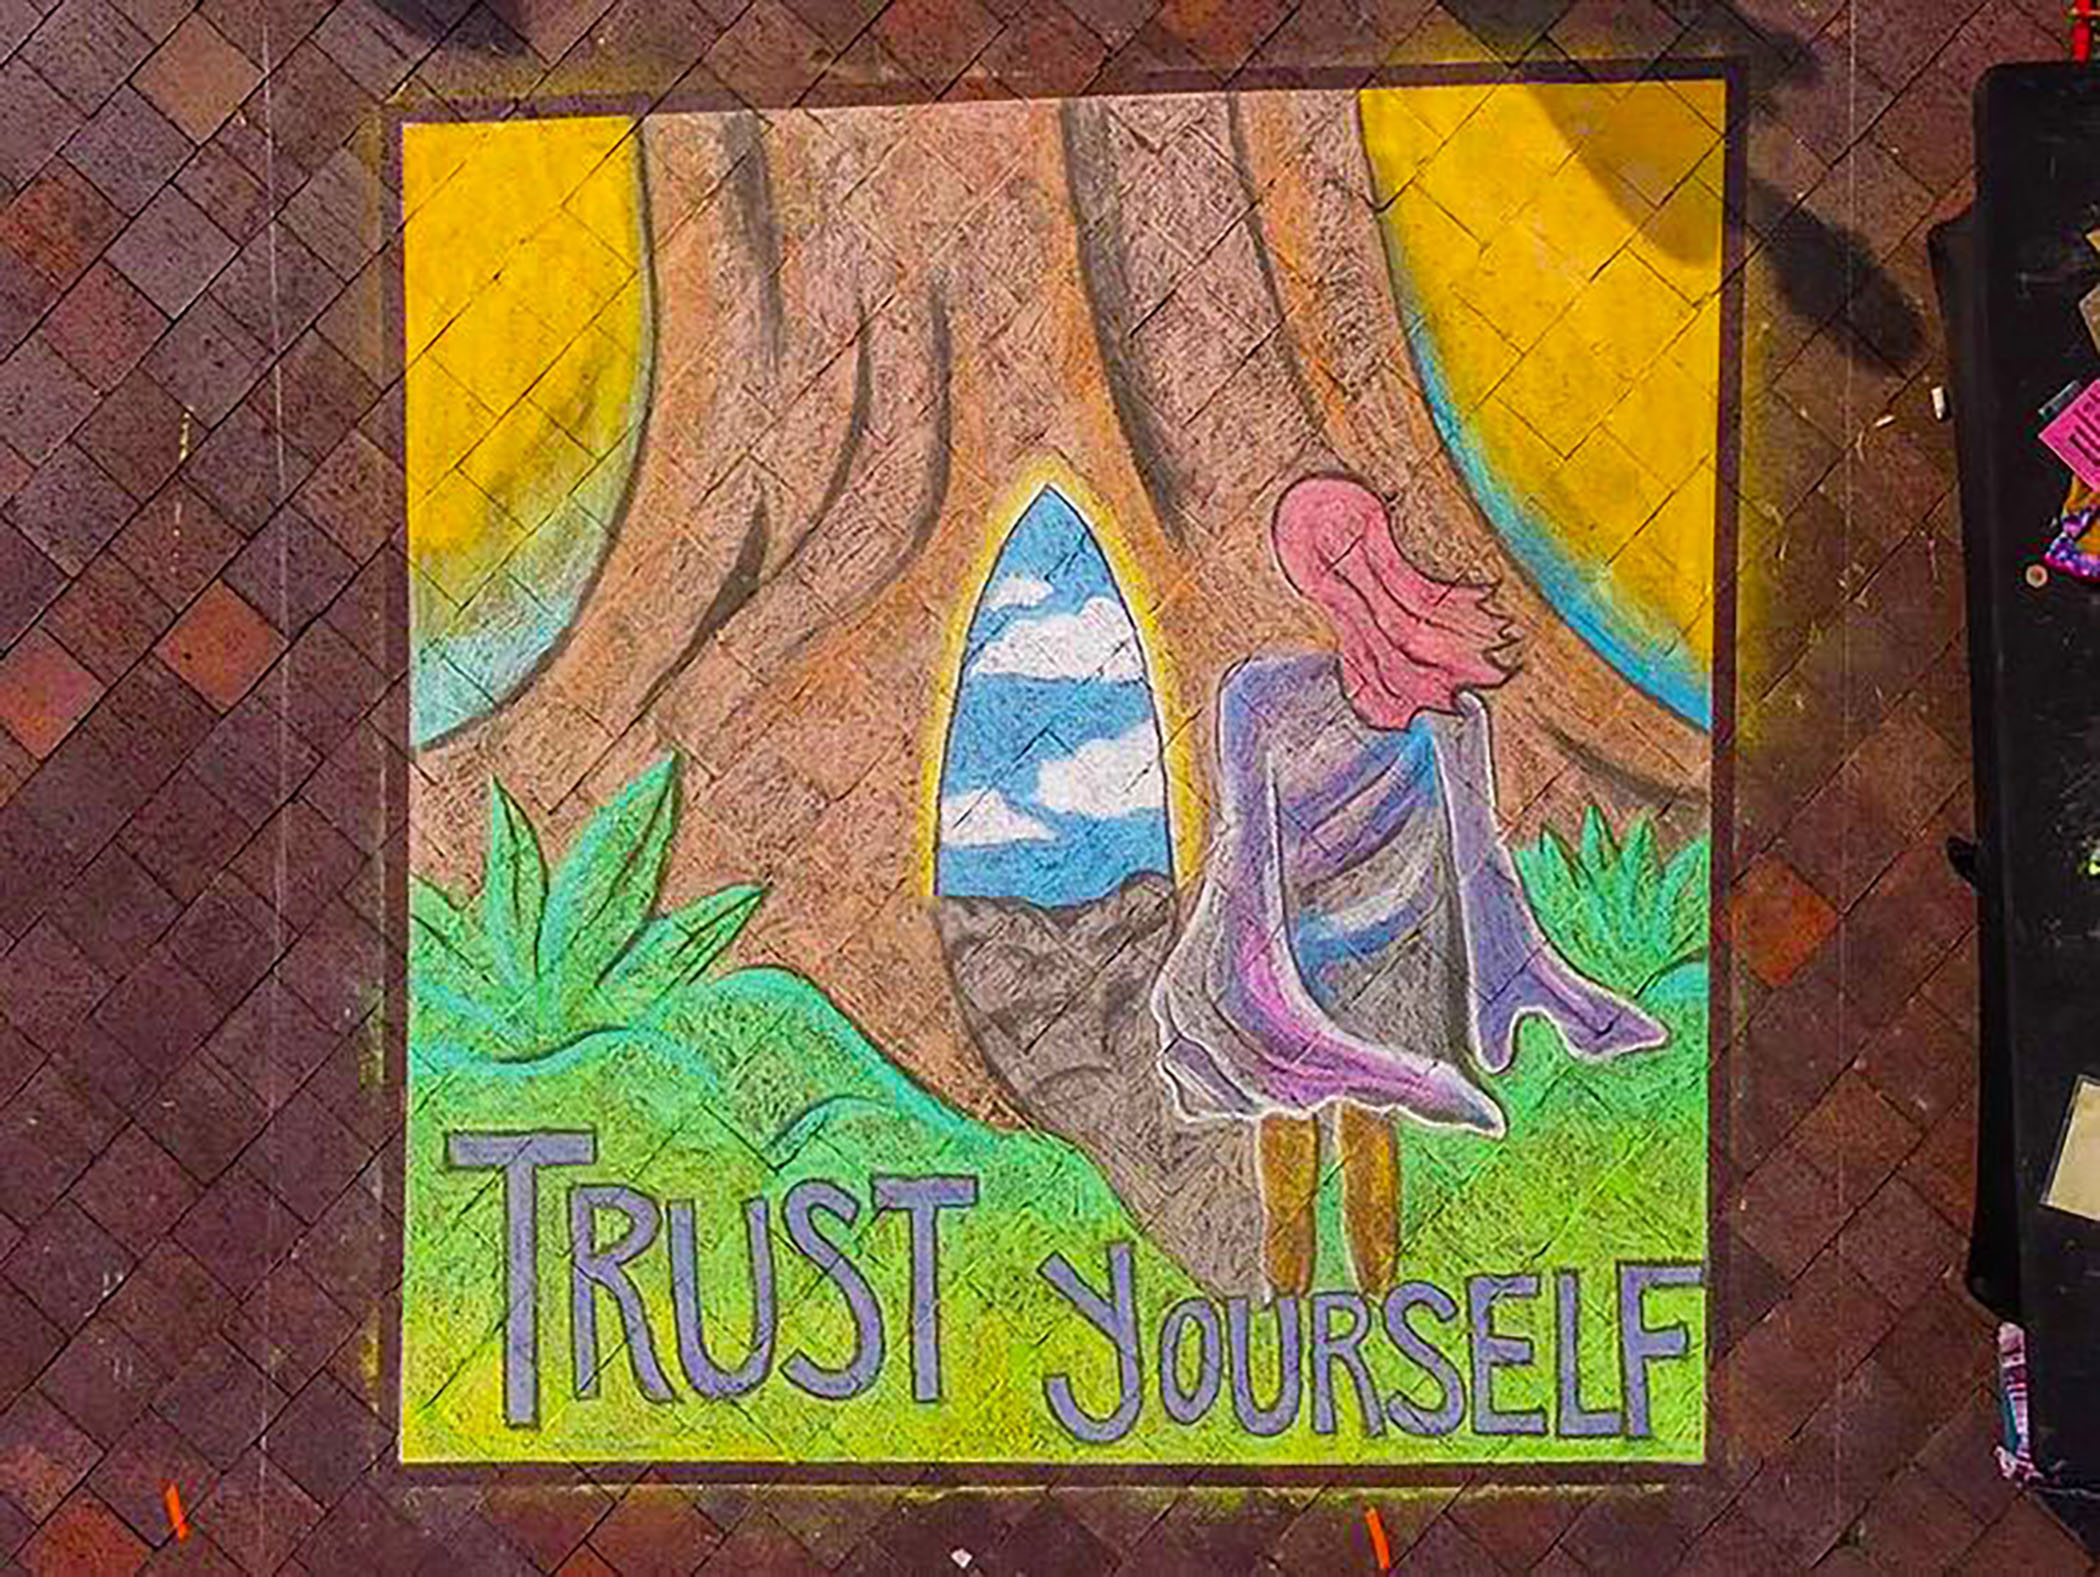 Trust Yourself - Chalk Mural @ Art in the Park chalk art competition. Art in the Park was held at James Weldon Johnson Park in downtown Jacksonville.